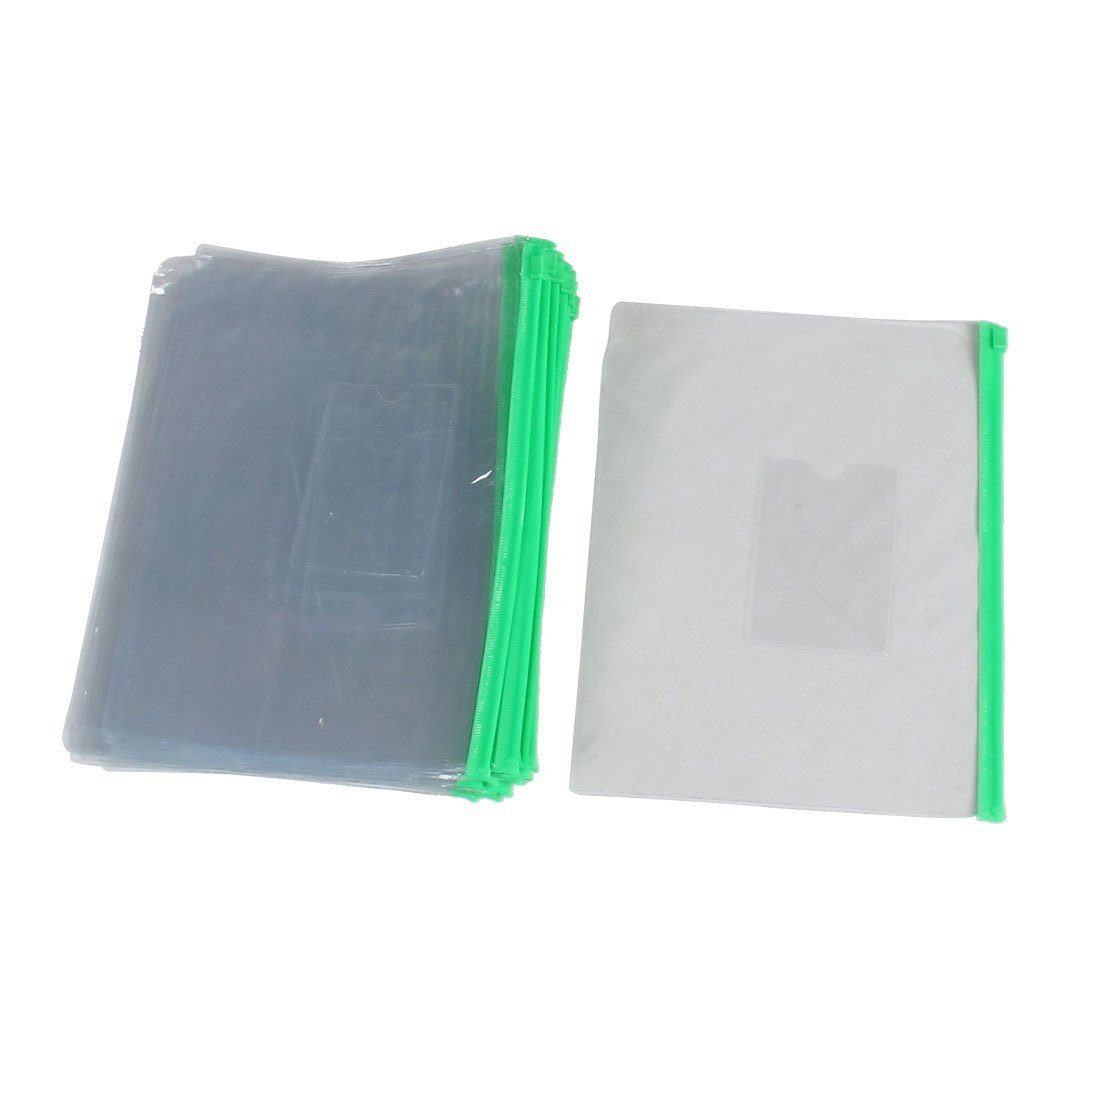 c5b156e5c732 Amazon.com : Uxcell Zipper Closure A5 Paper Slider Folders Files ...